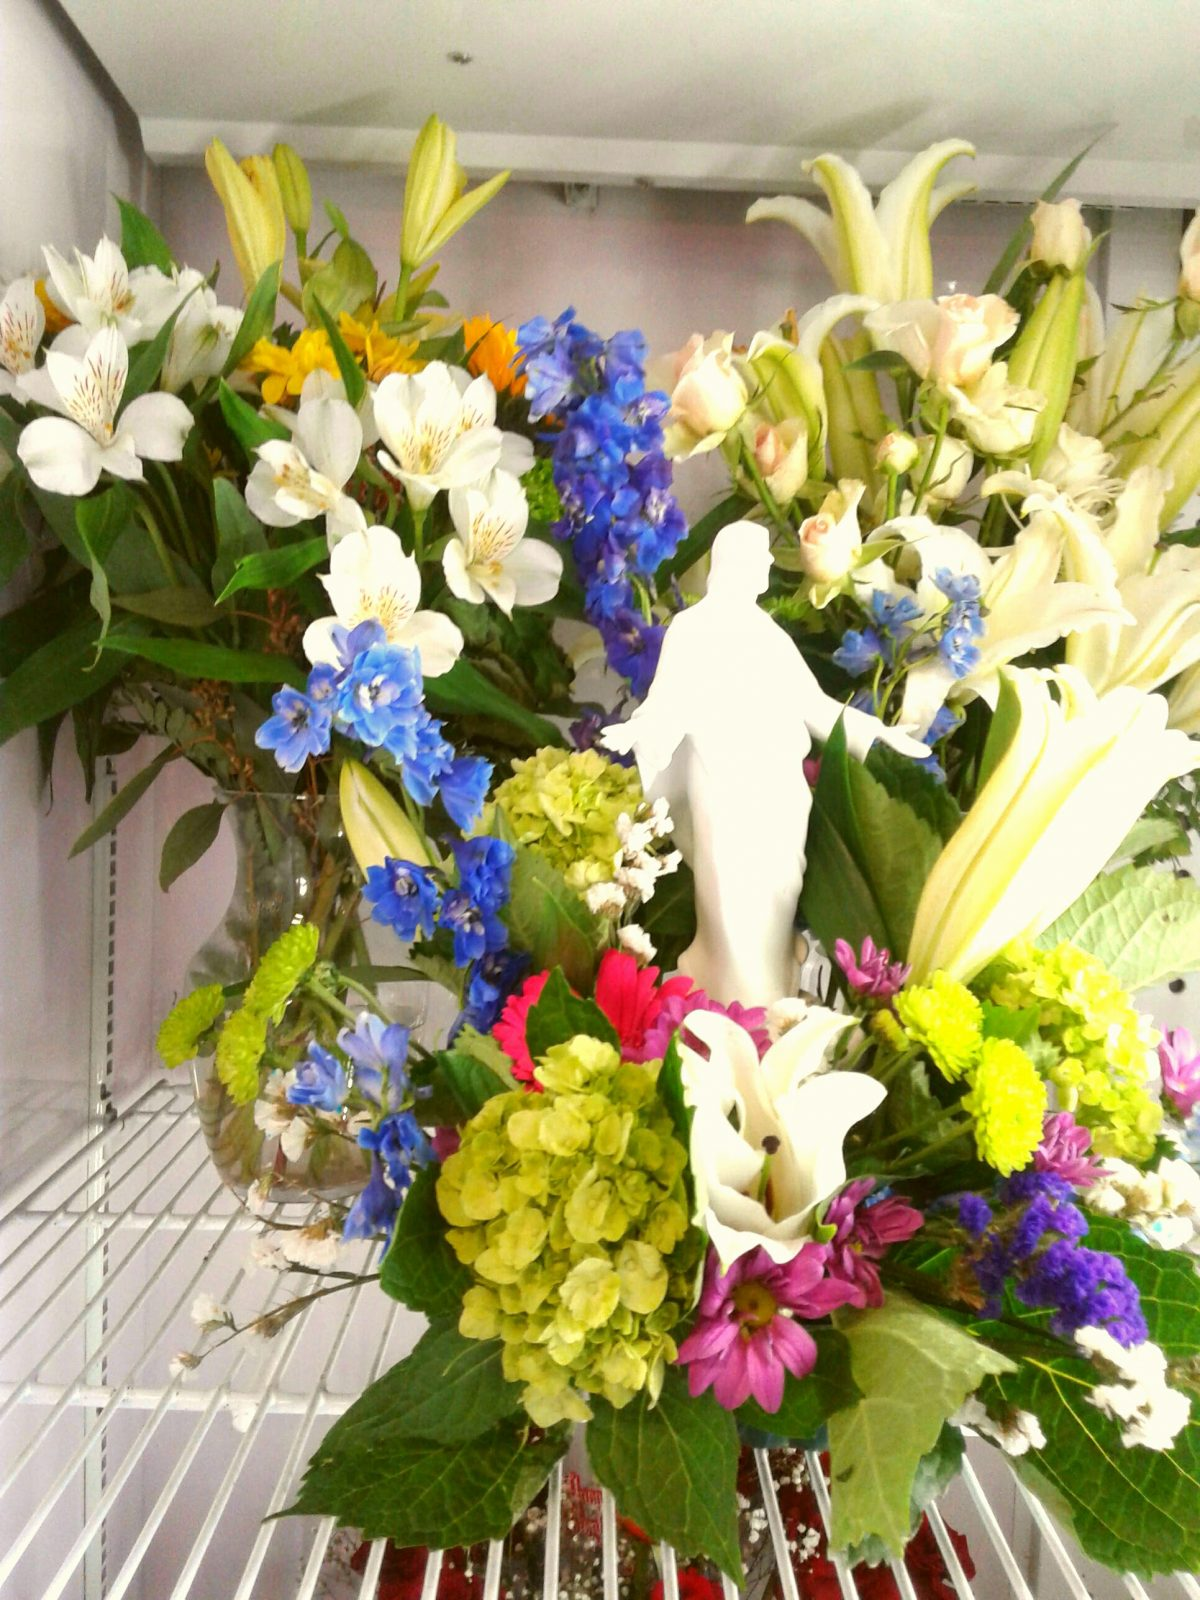 EASTER FLOWERS 2019 for the Freshest Flowers by ROSE PETALS FLORIST